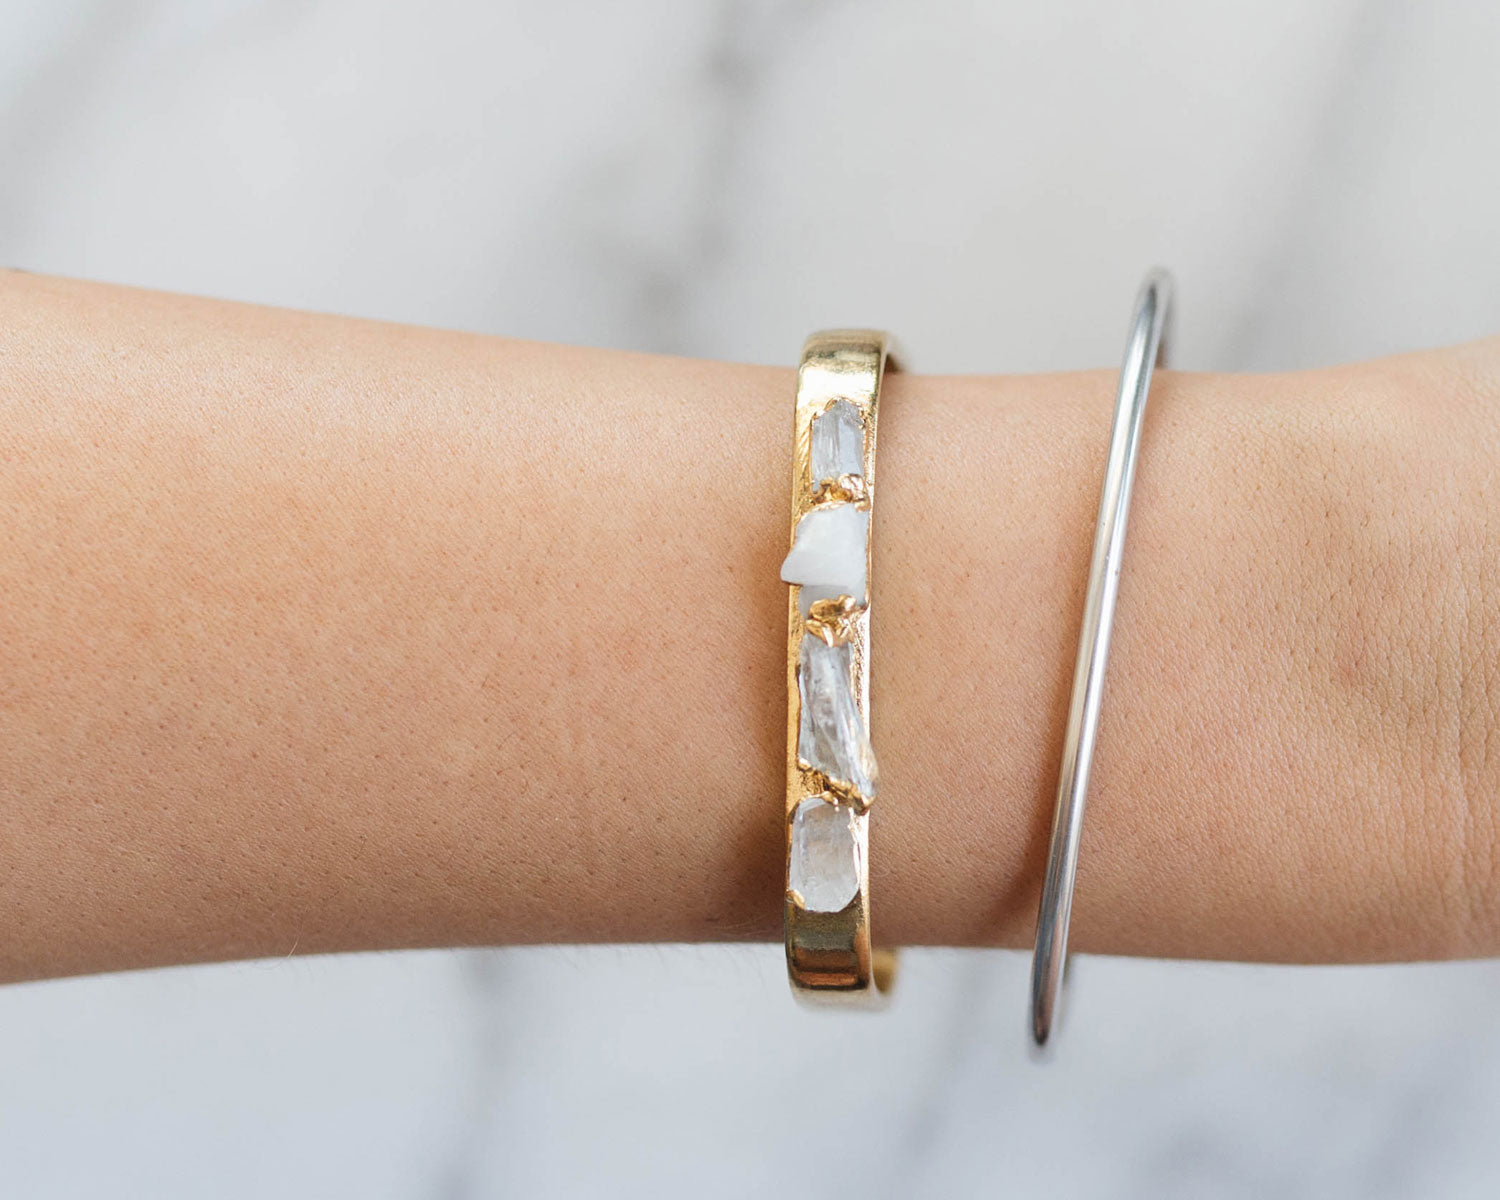 Dani Barbe Quartz Cuff and Classic Cuff